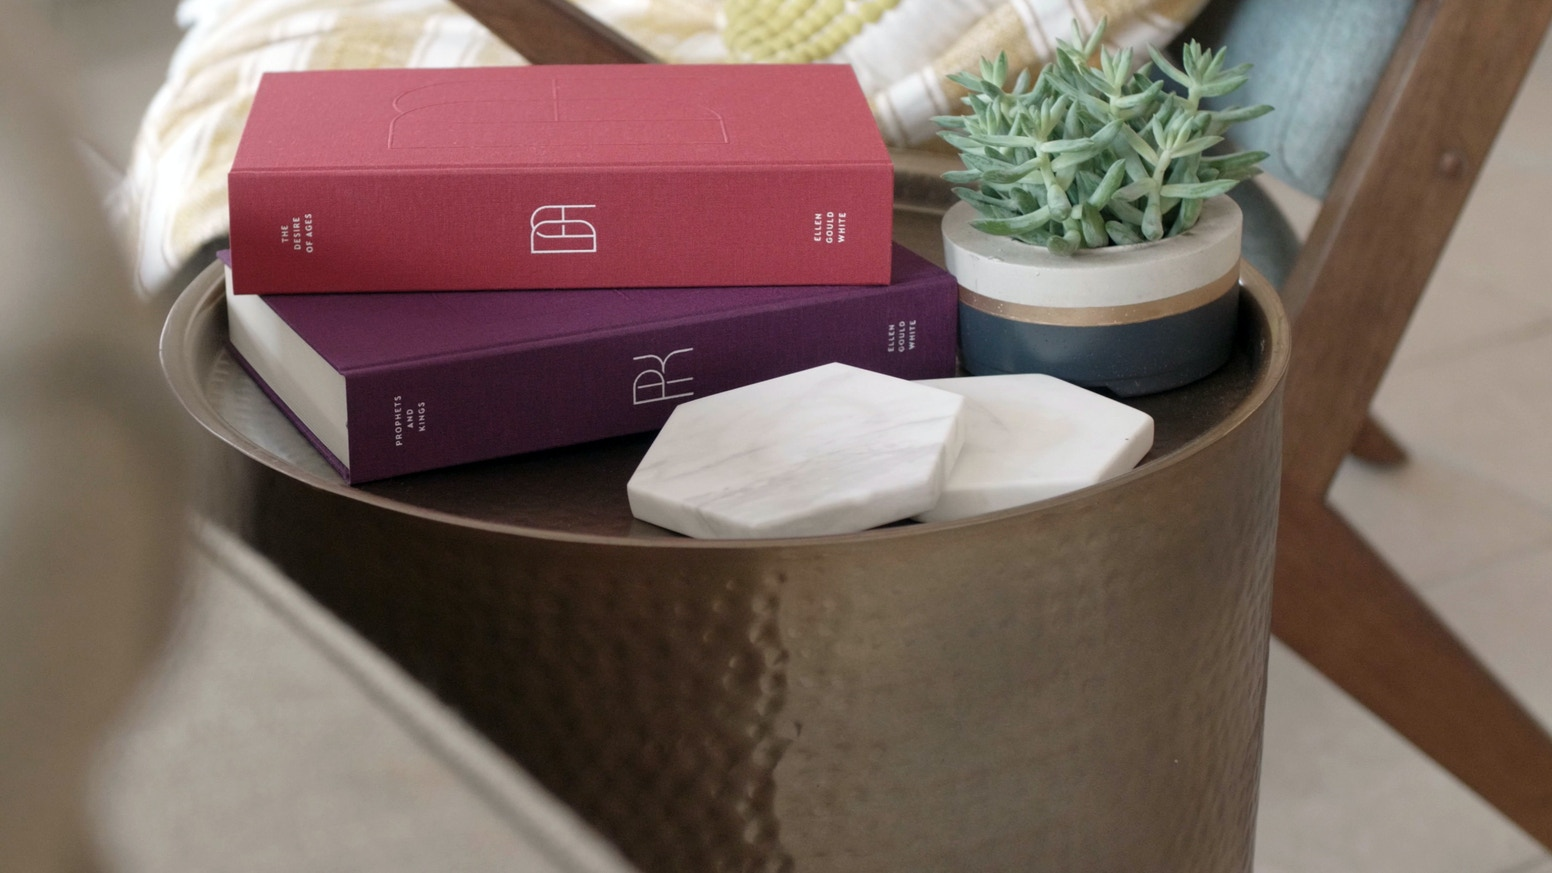 A new, heirloom-quality, NKJV edition of Ellen G. White's Conflict of the Ages series—books that match the beauty of the words and ideas inside.